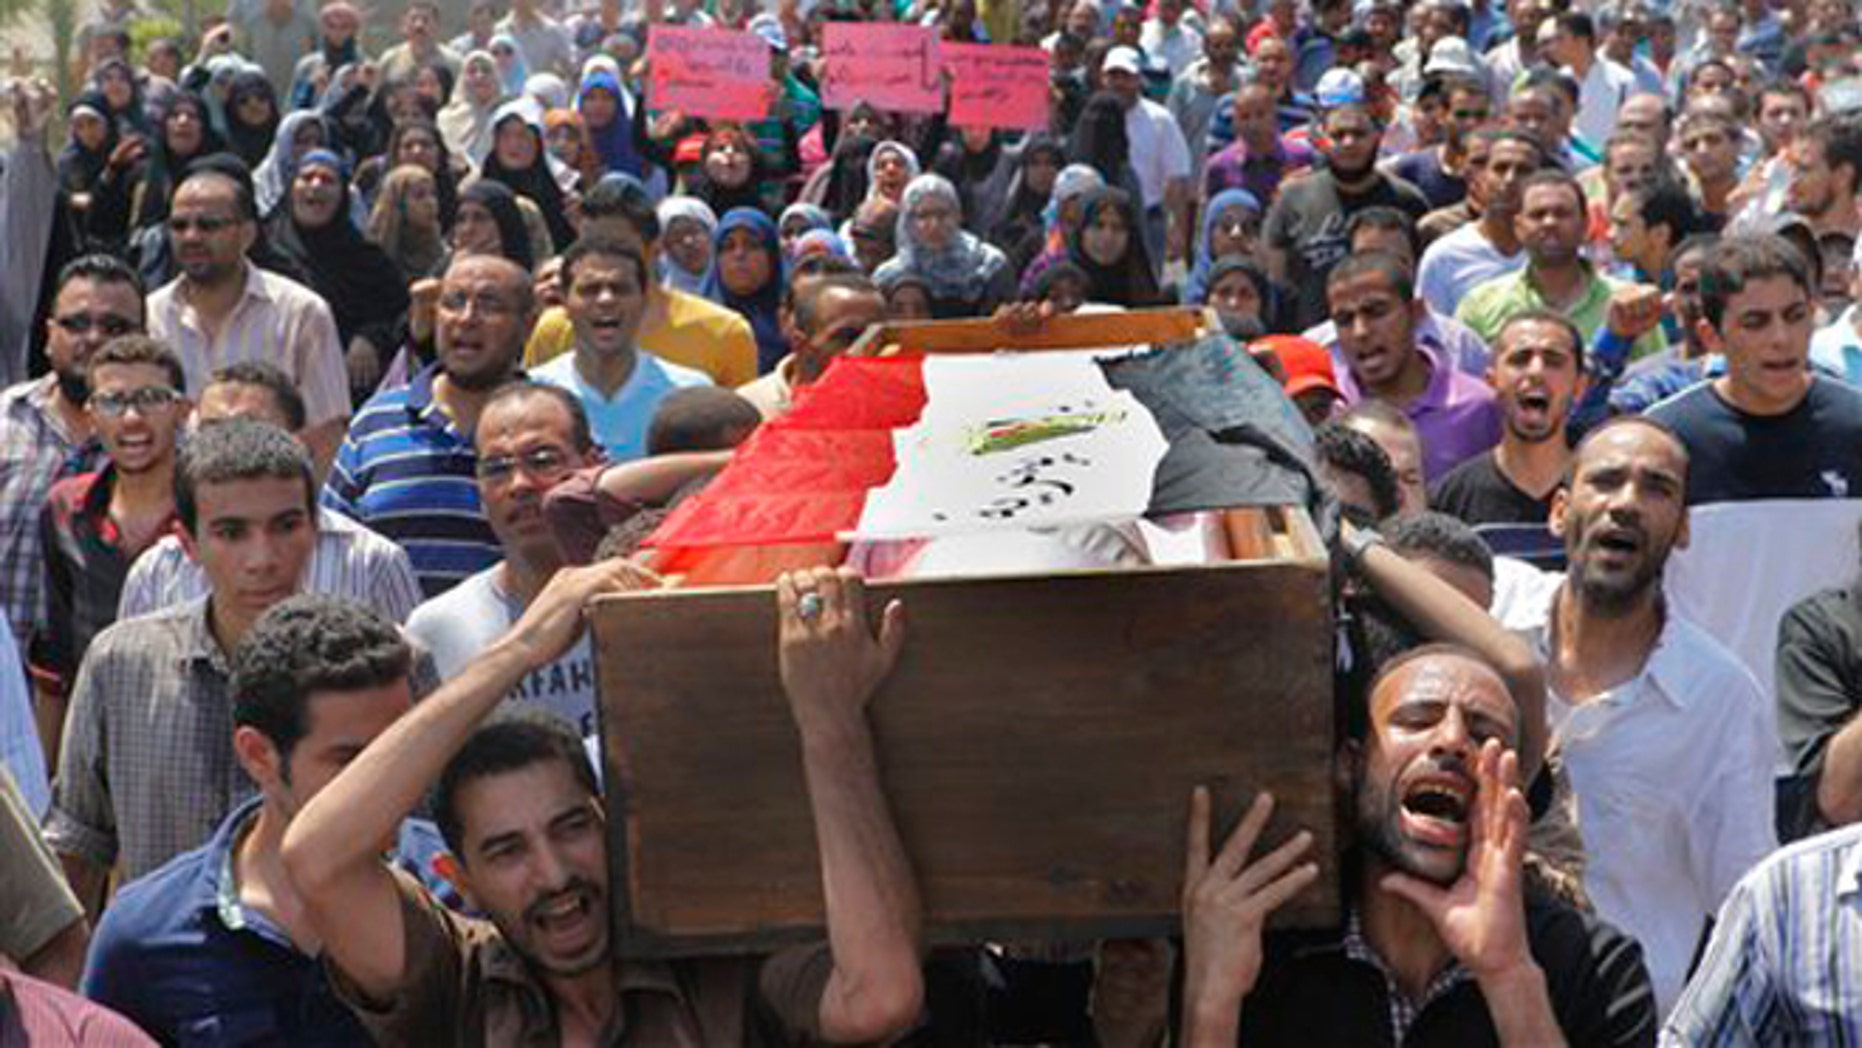 Aug. 16, 2013: Supporters of Egypt's ousted President Mohammed Morsi march towards Old Cairo as they carry the coffin, covered with a national flag, of their colleague who was killed during clashes on August 14 in Cairo, Egypt.